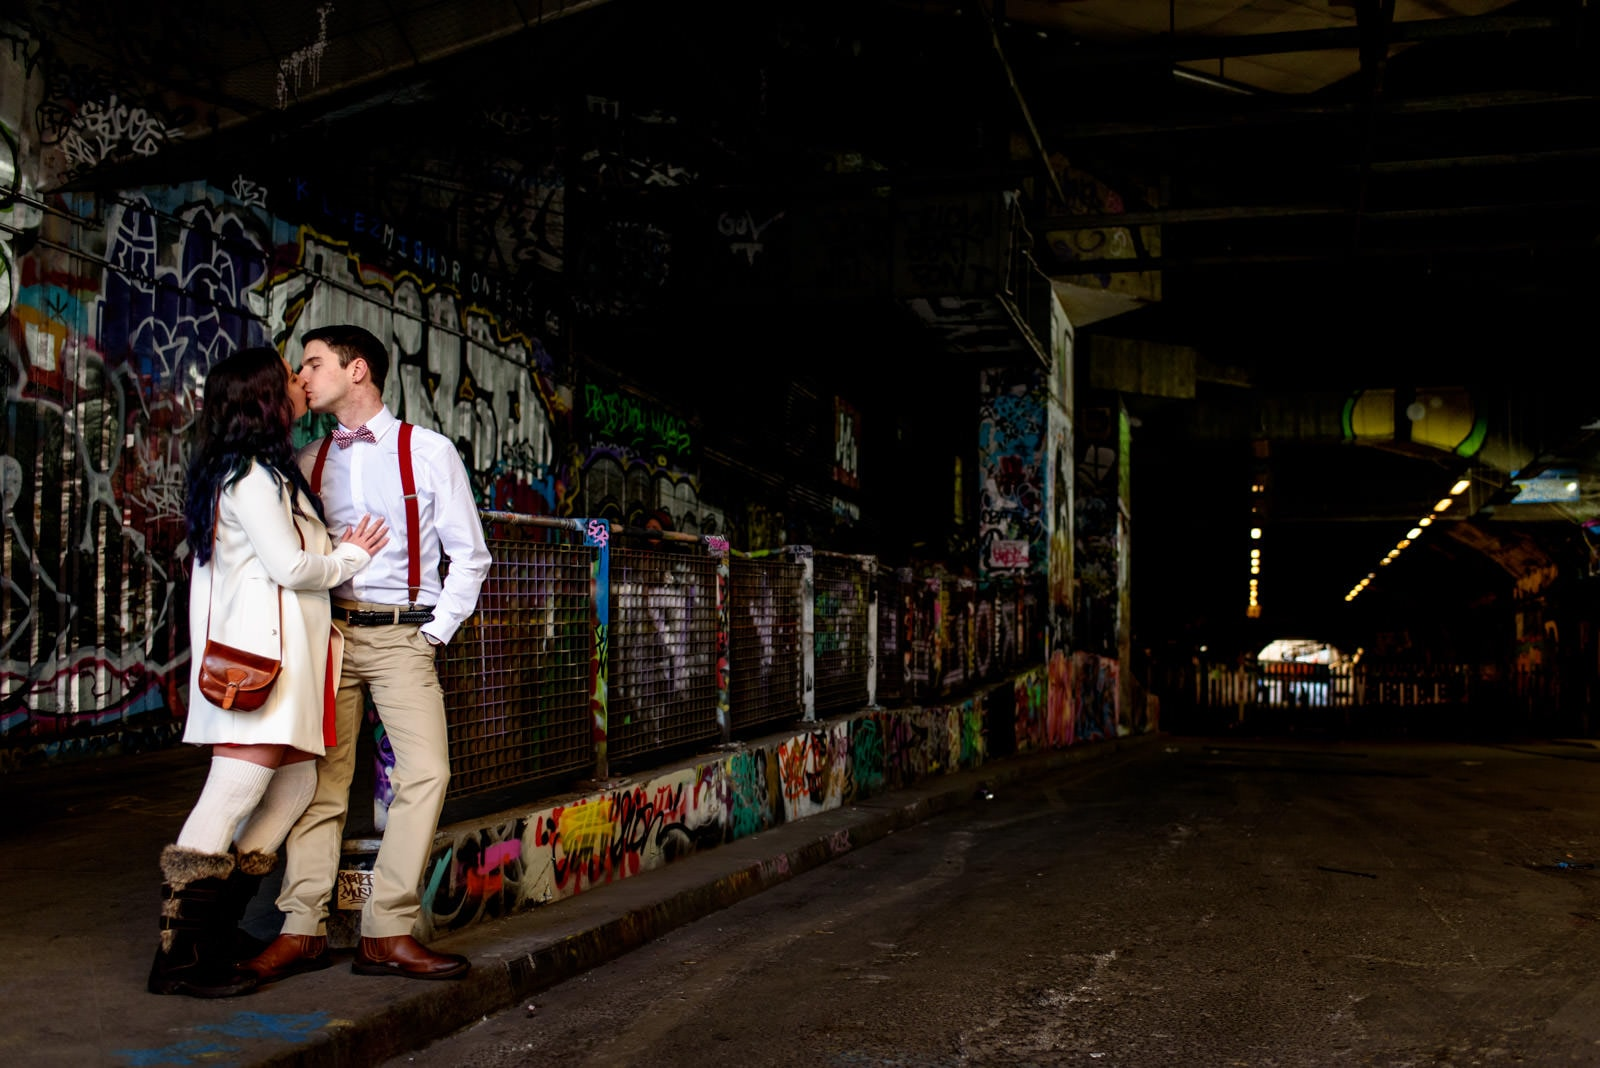 Couple engagement photography in the waterloo tunnels.